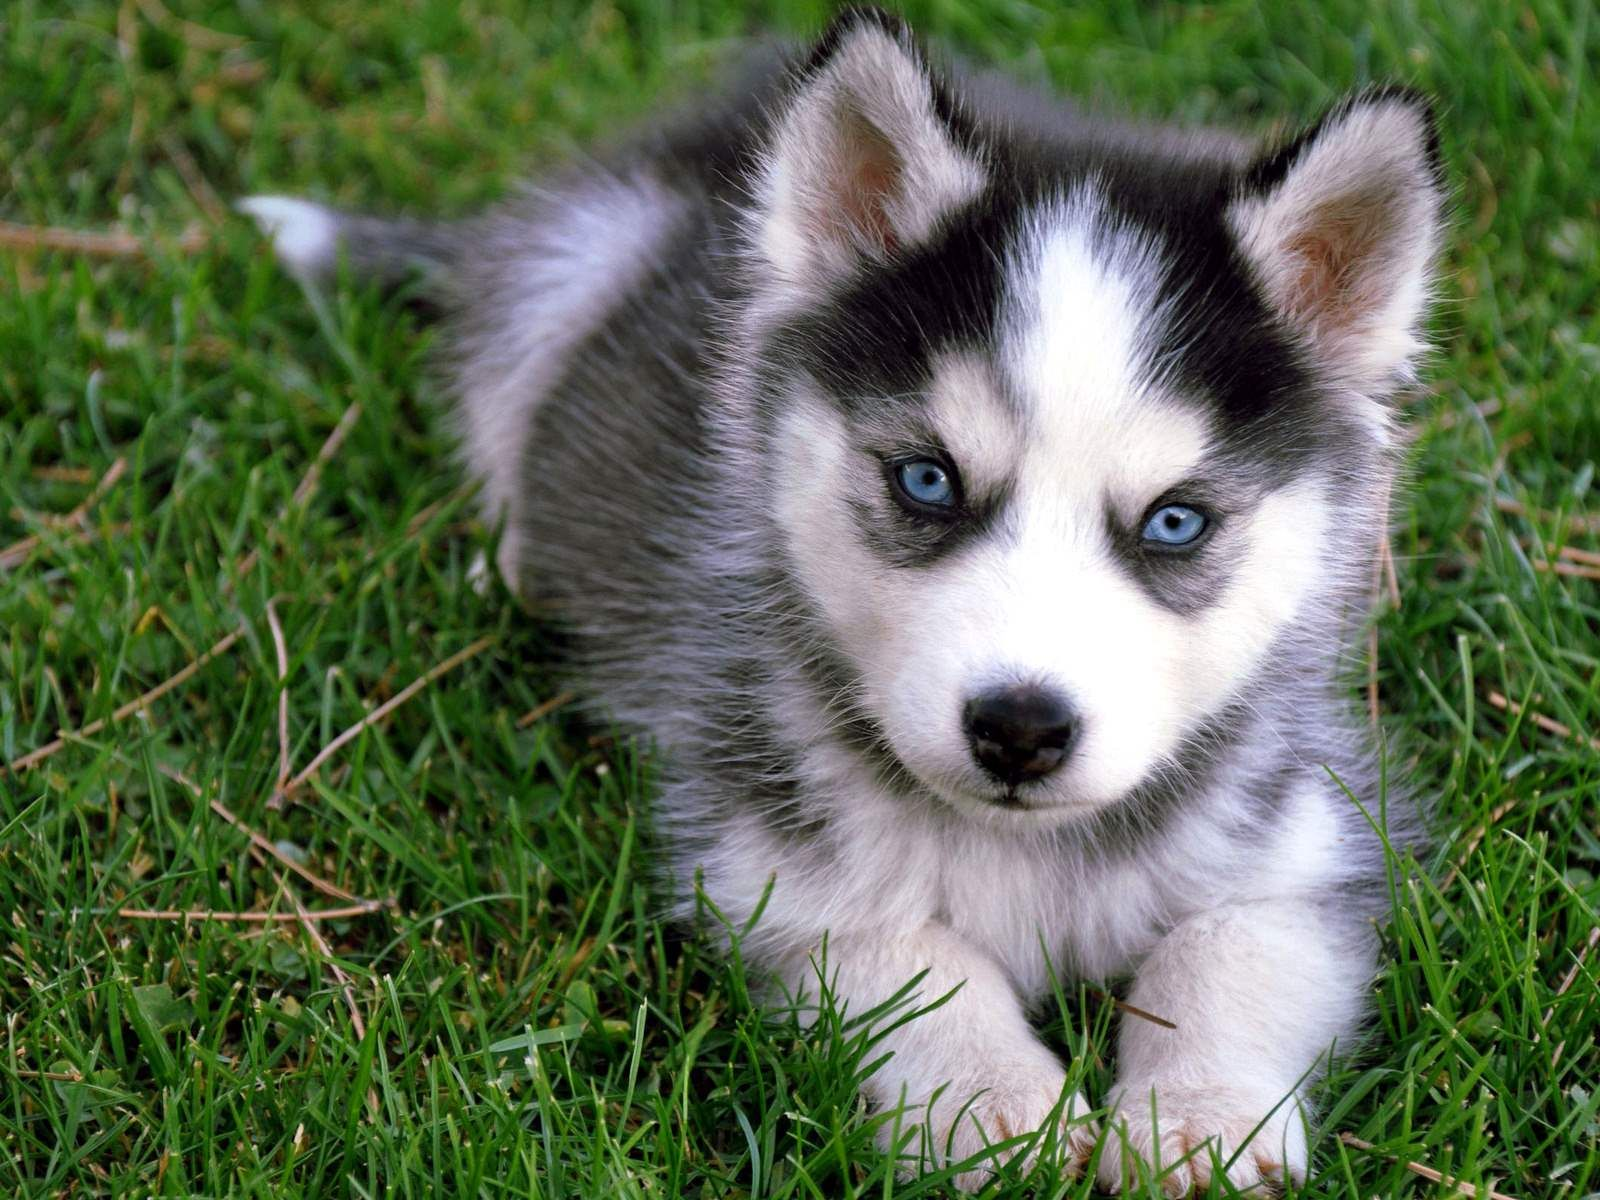 Here Are Husky Puppies My Brother Loves Huskies And Wants A Puppy